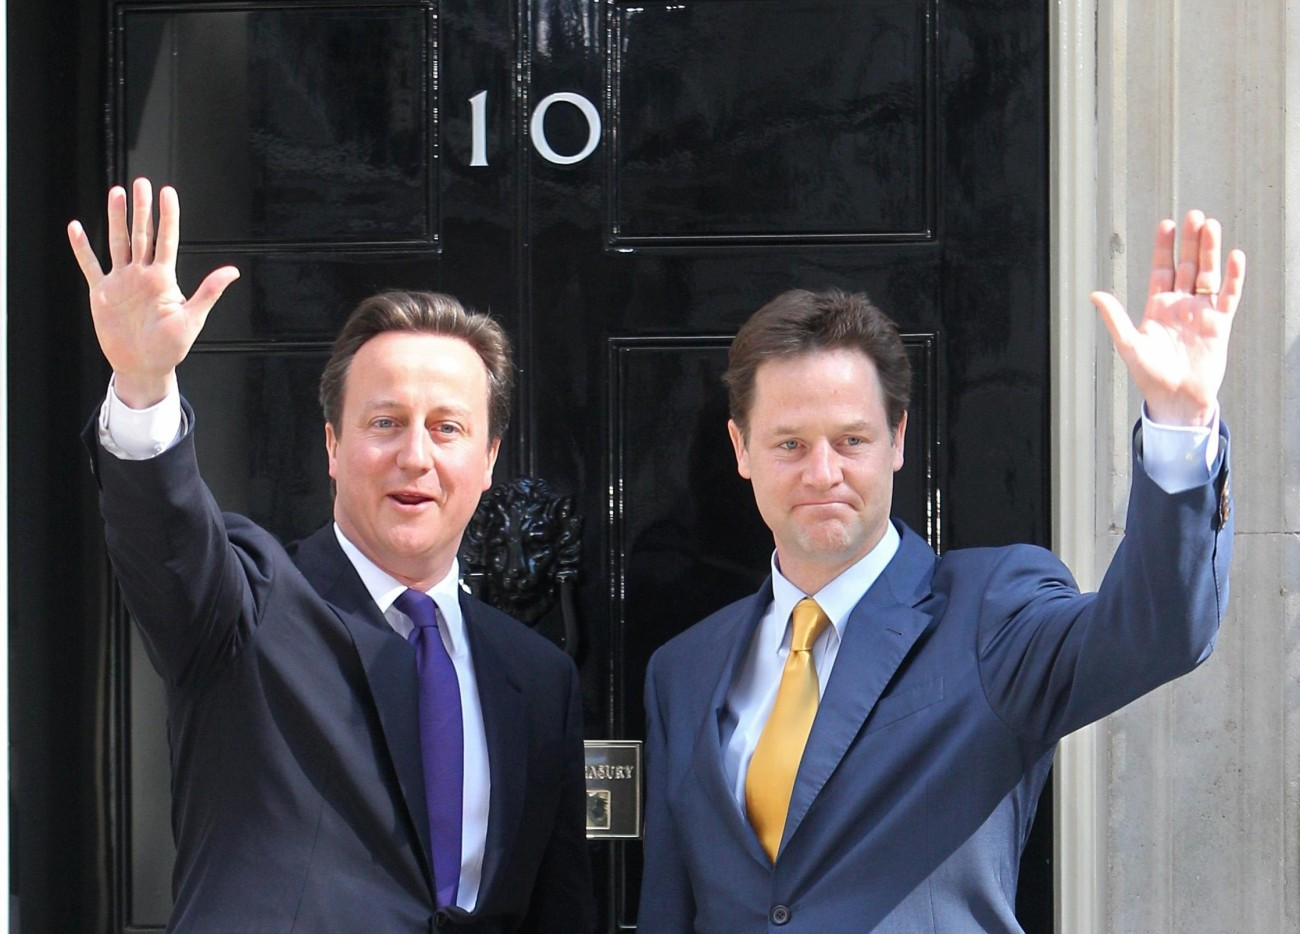 David Cameron y Nick Clegg en 2010